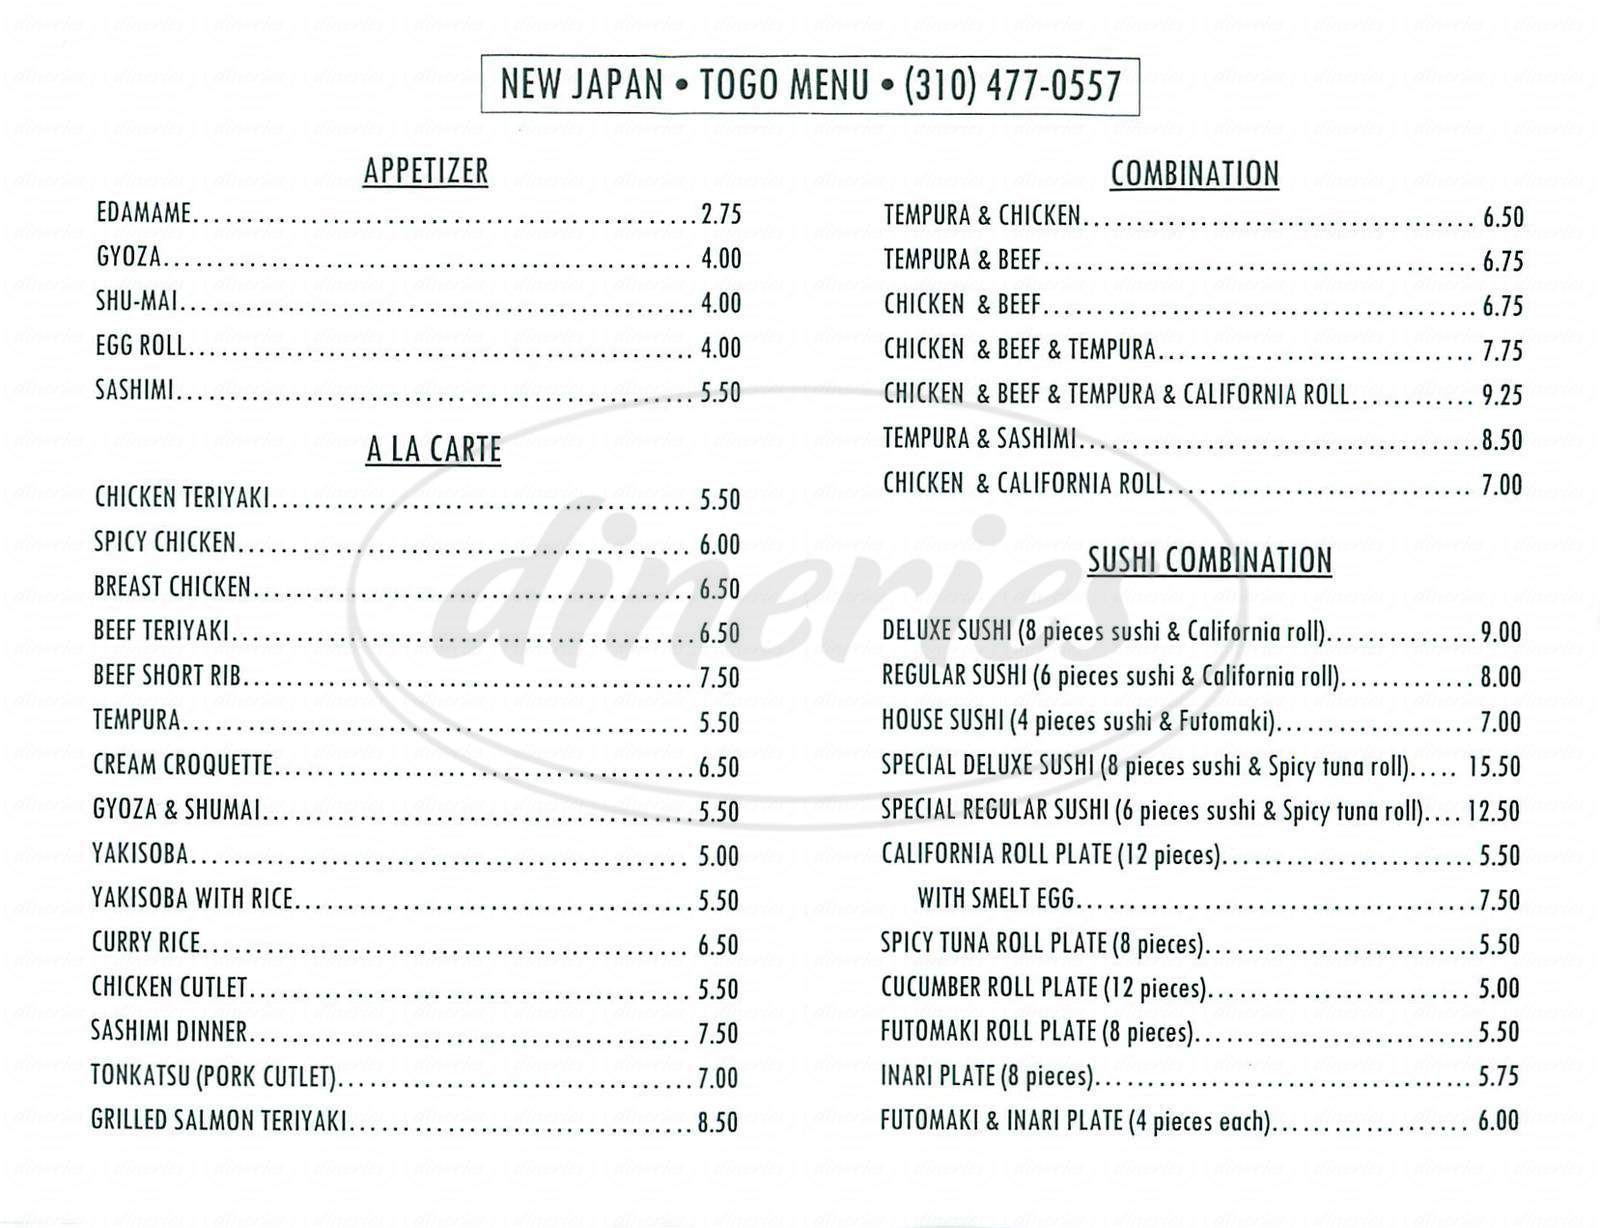 menu for New Japan